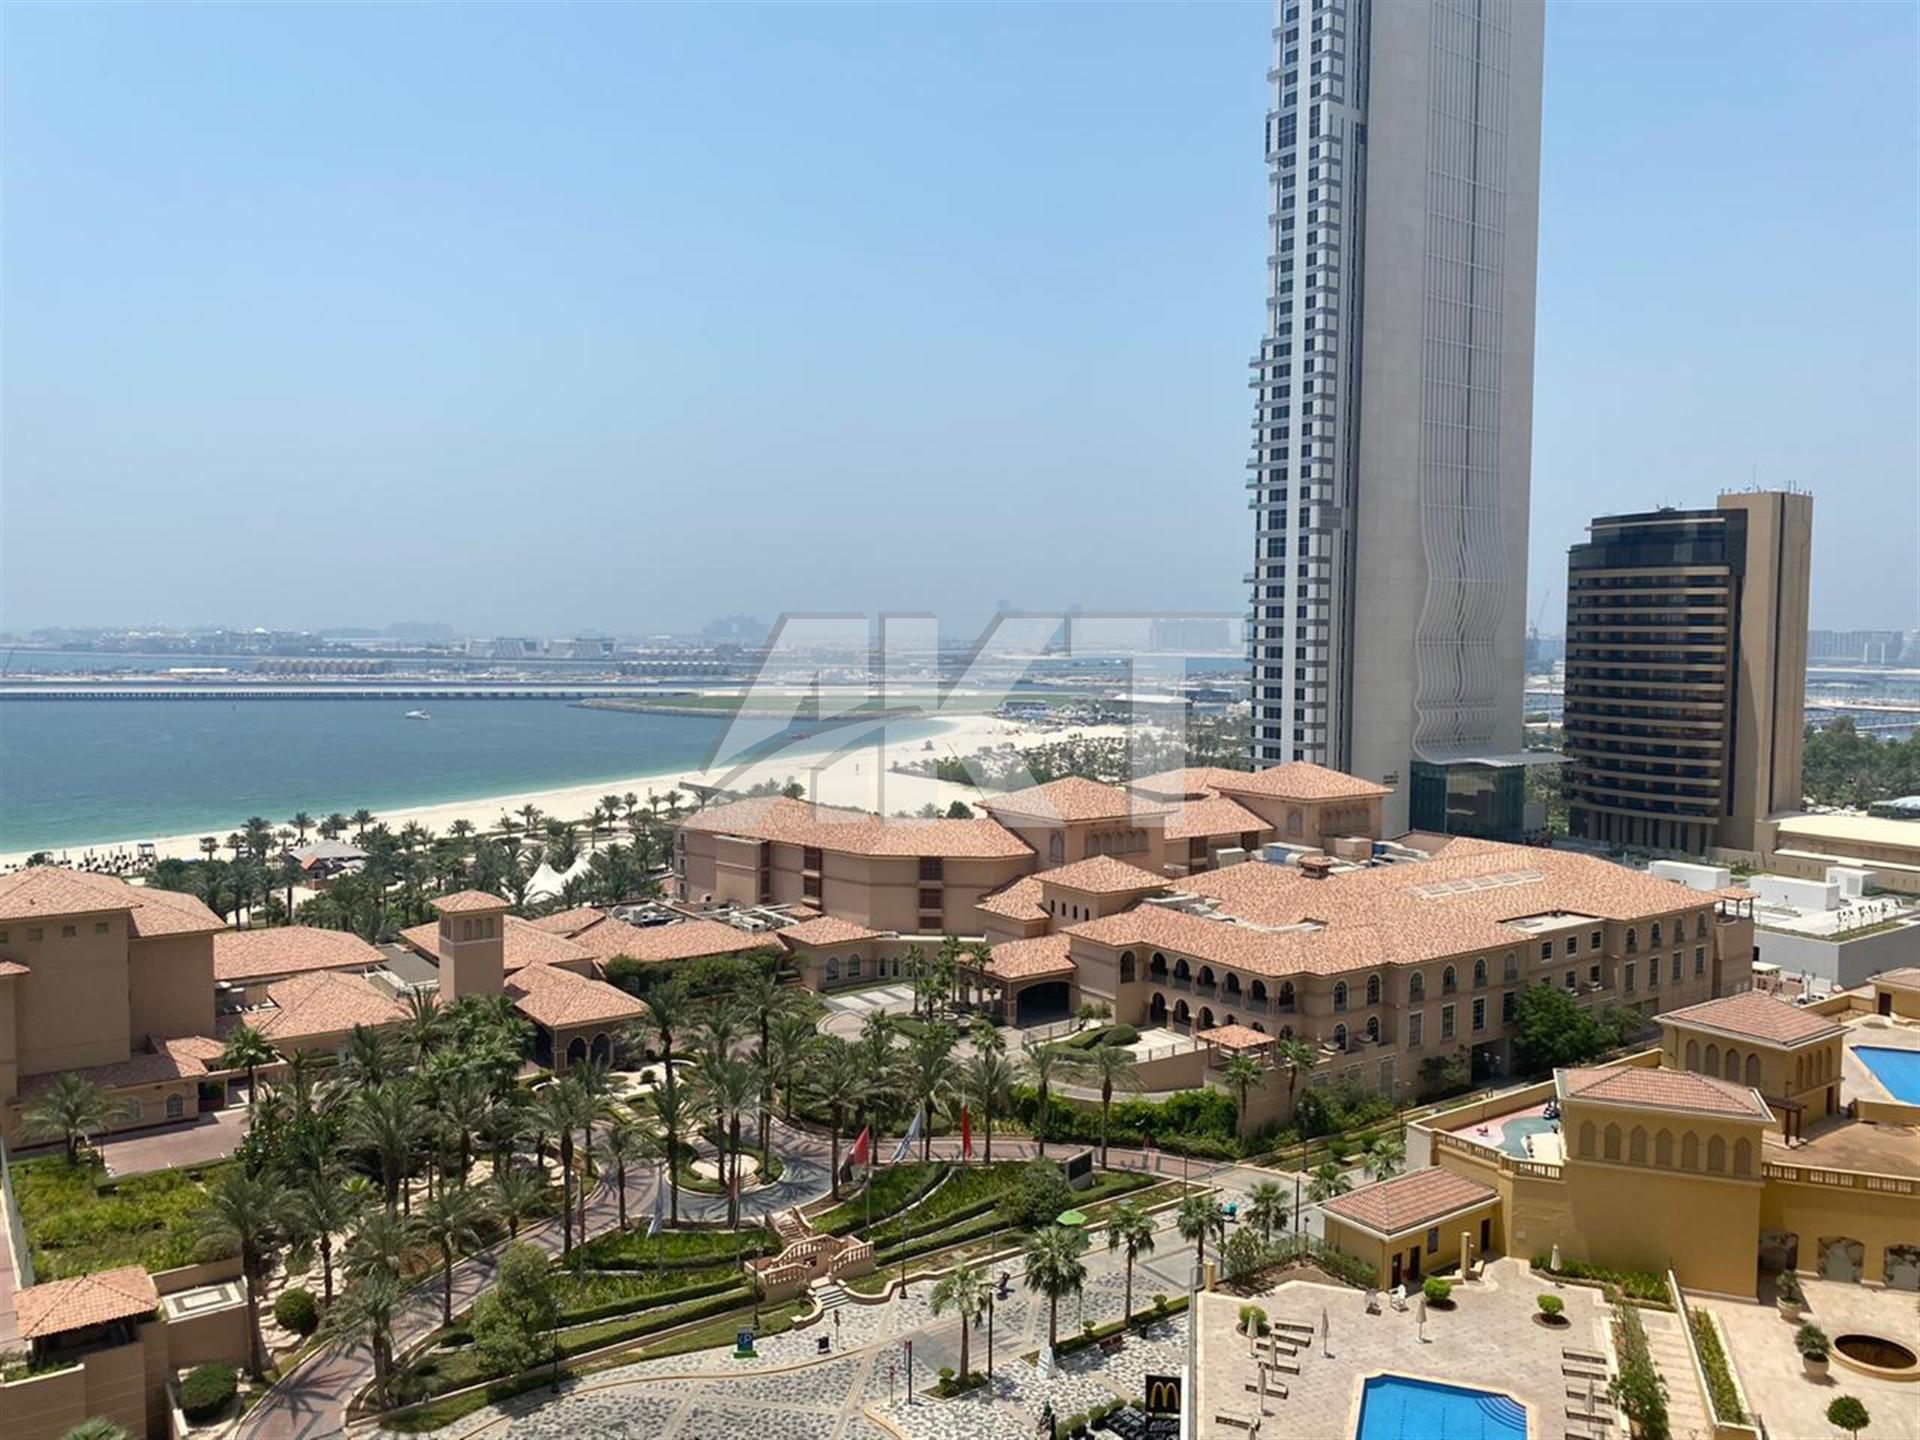 89 K / Full Sea View / 2 Beds / Ready to Move / Sadaf 7 / JBR